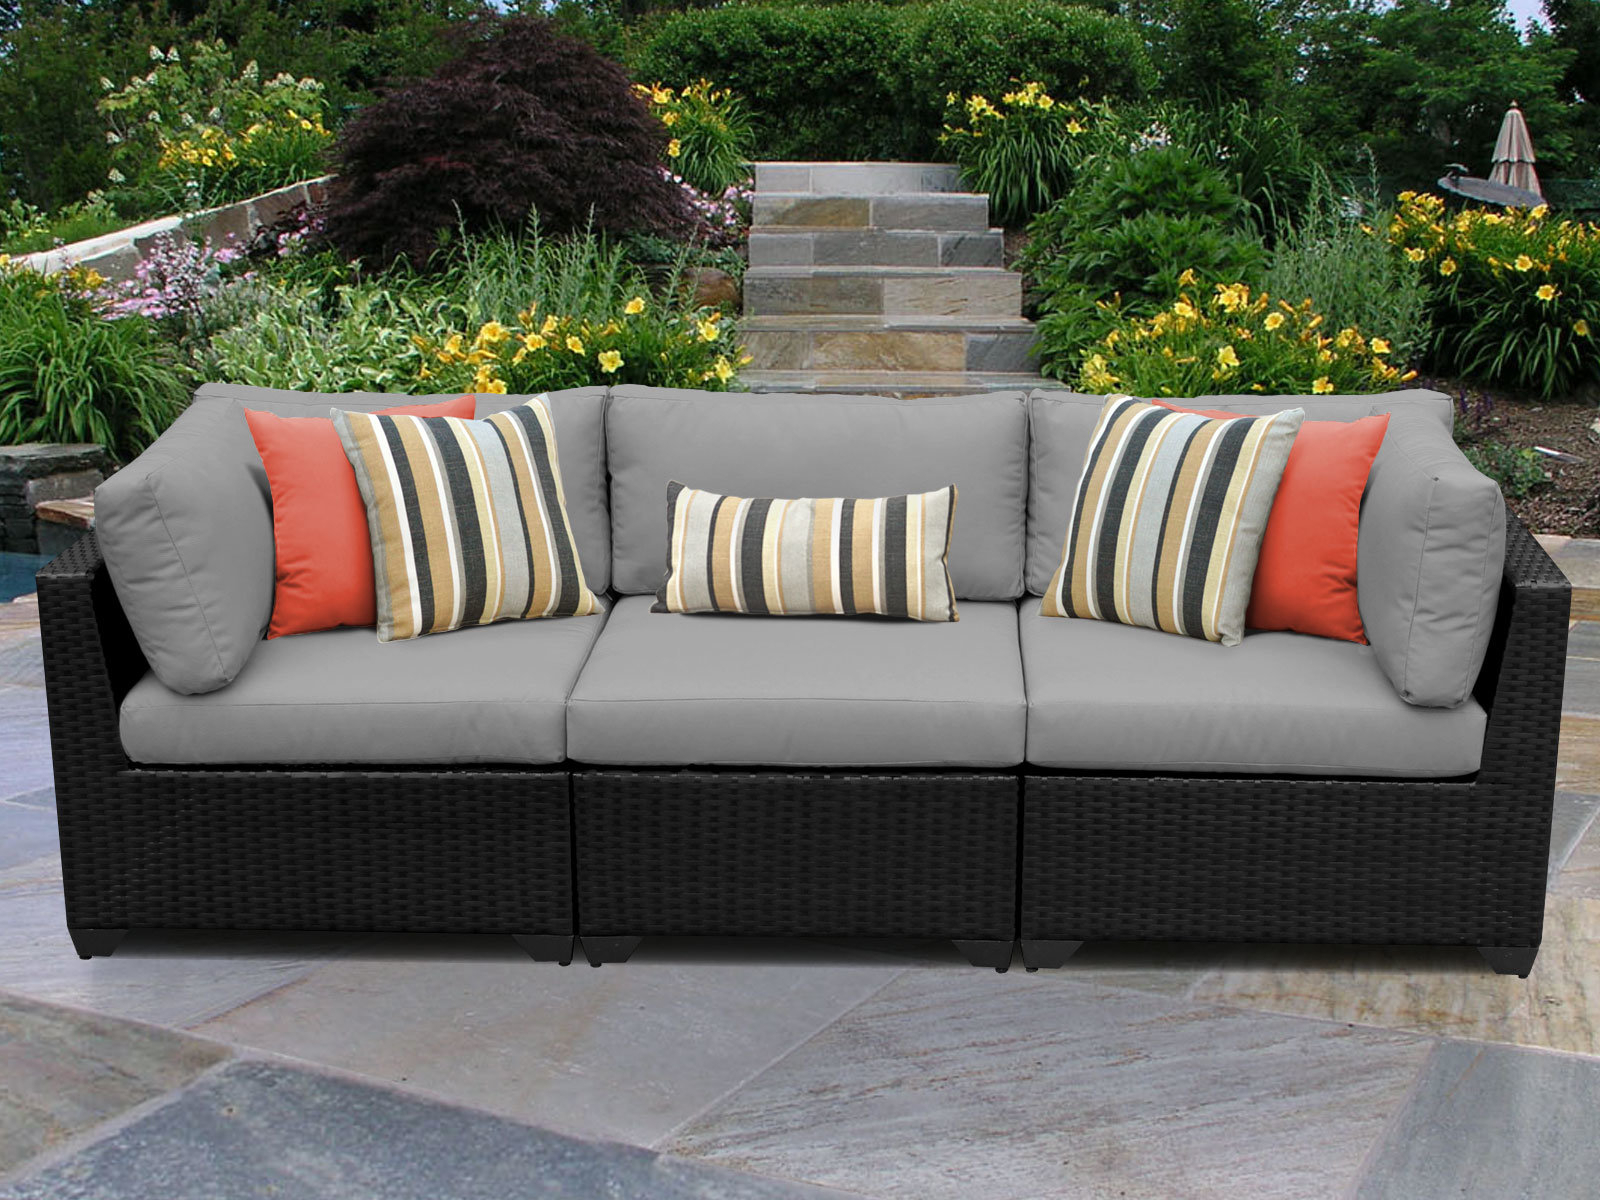 Camak Patio Sofa With Cushions With Regard To 2020 Mcmanis Patio Sofas With Cushion (View 19 of 20)